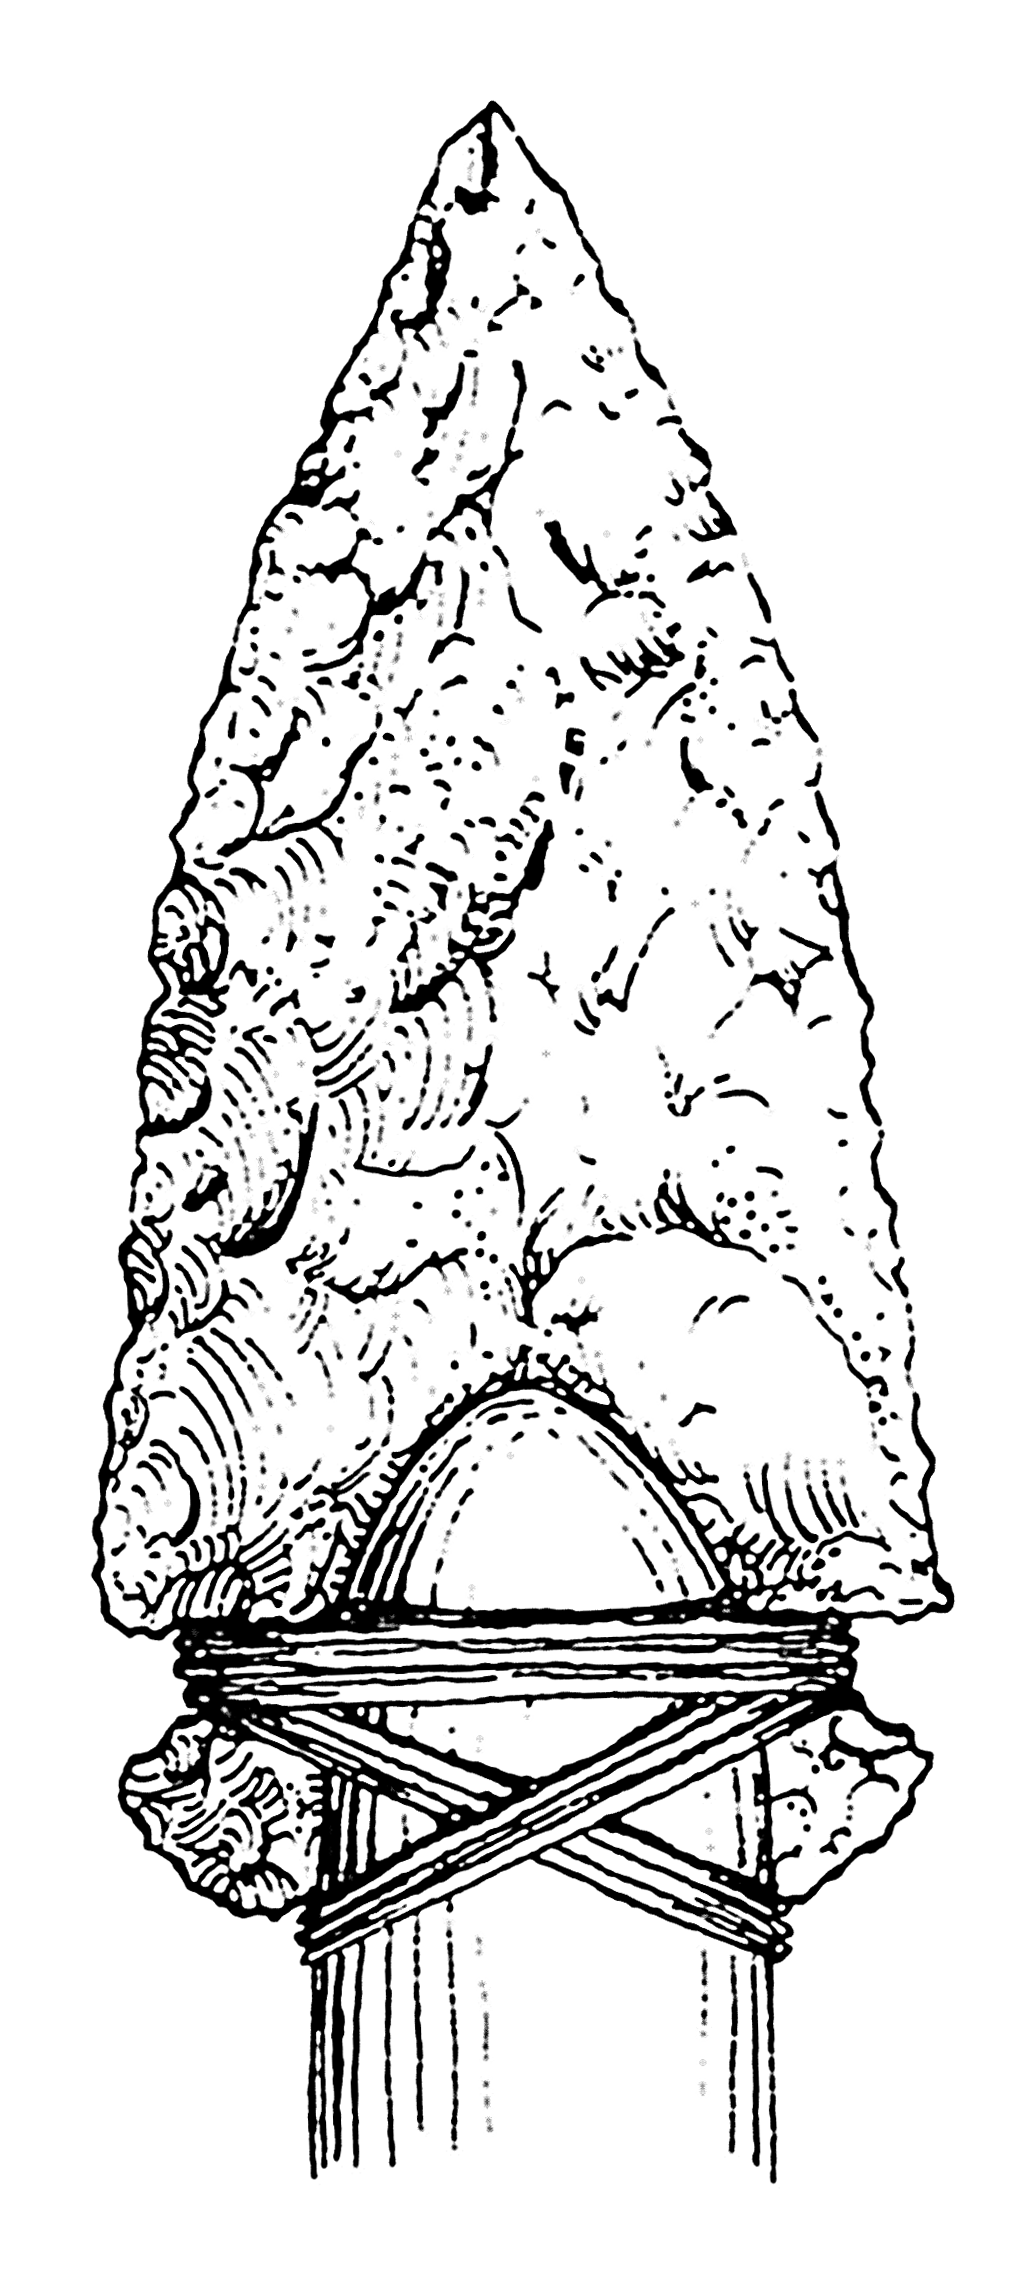 File psf png wikimedia. Arrowhead clipart stone tool